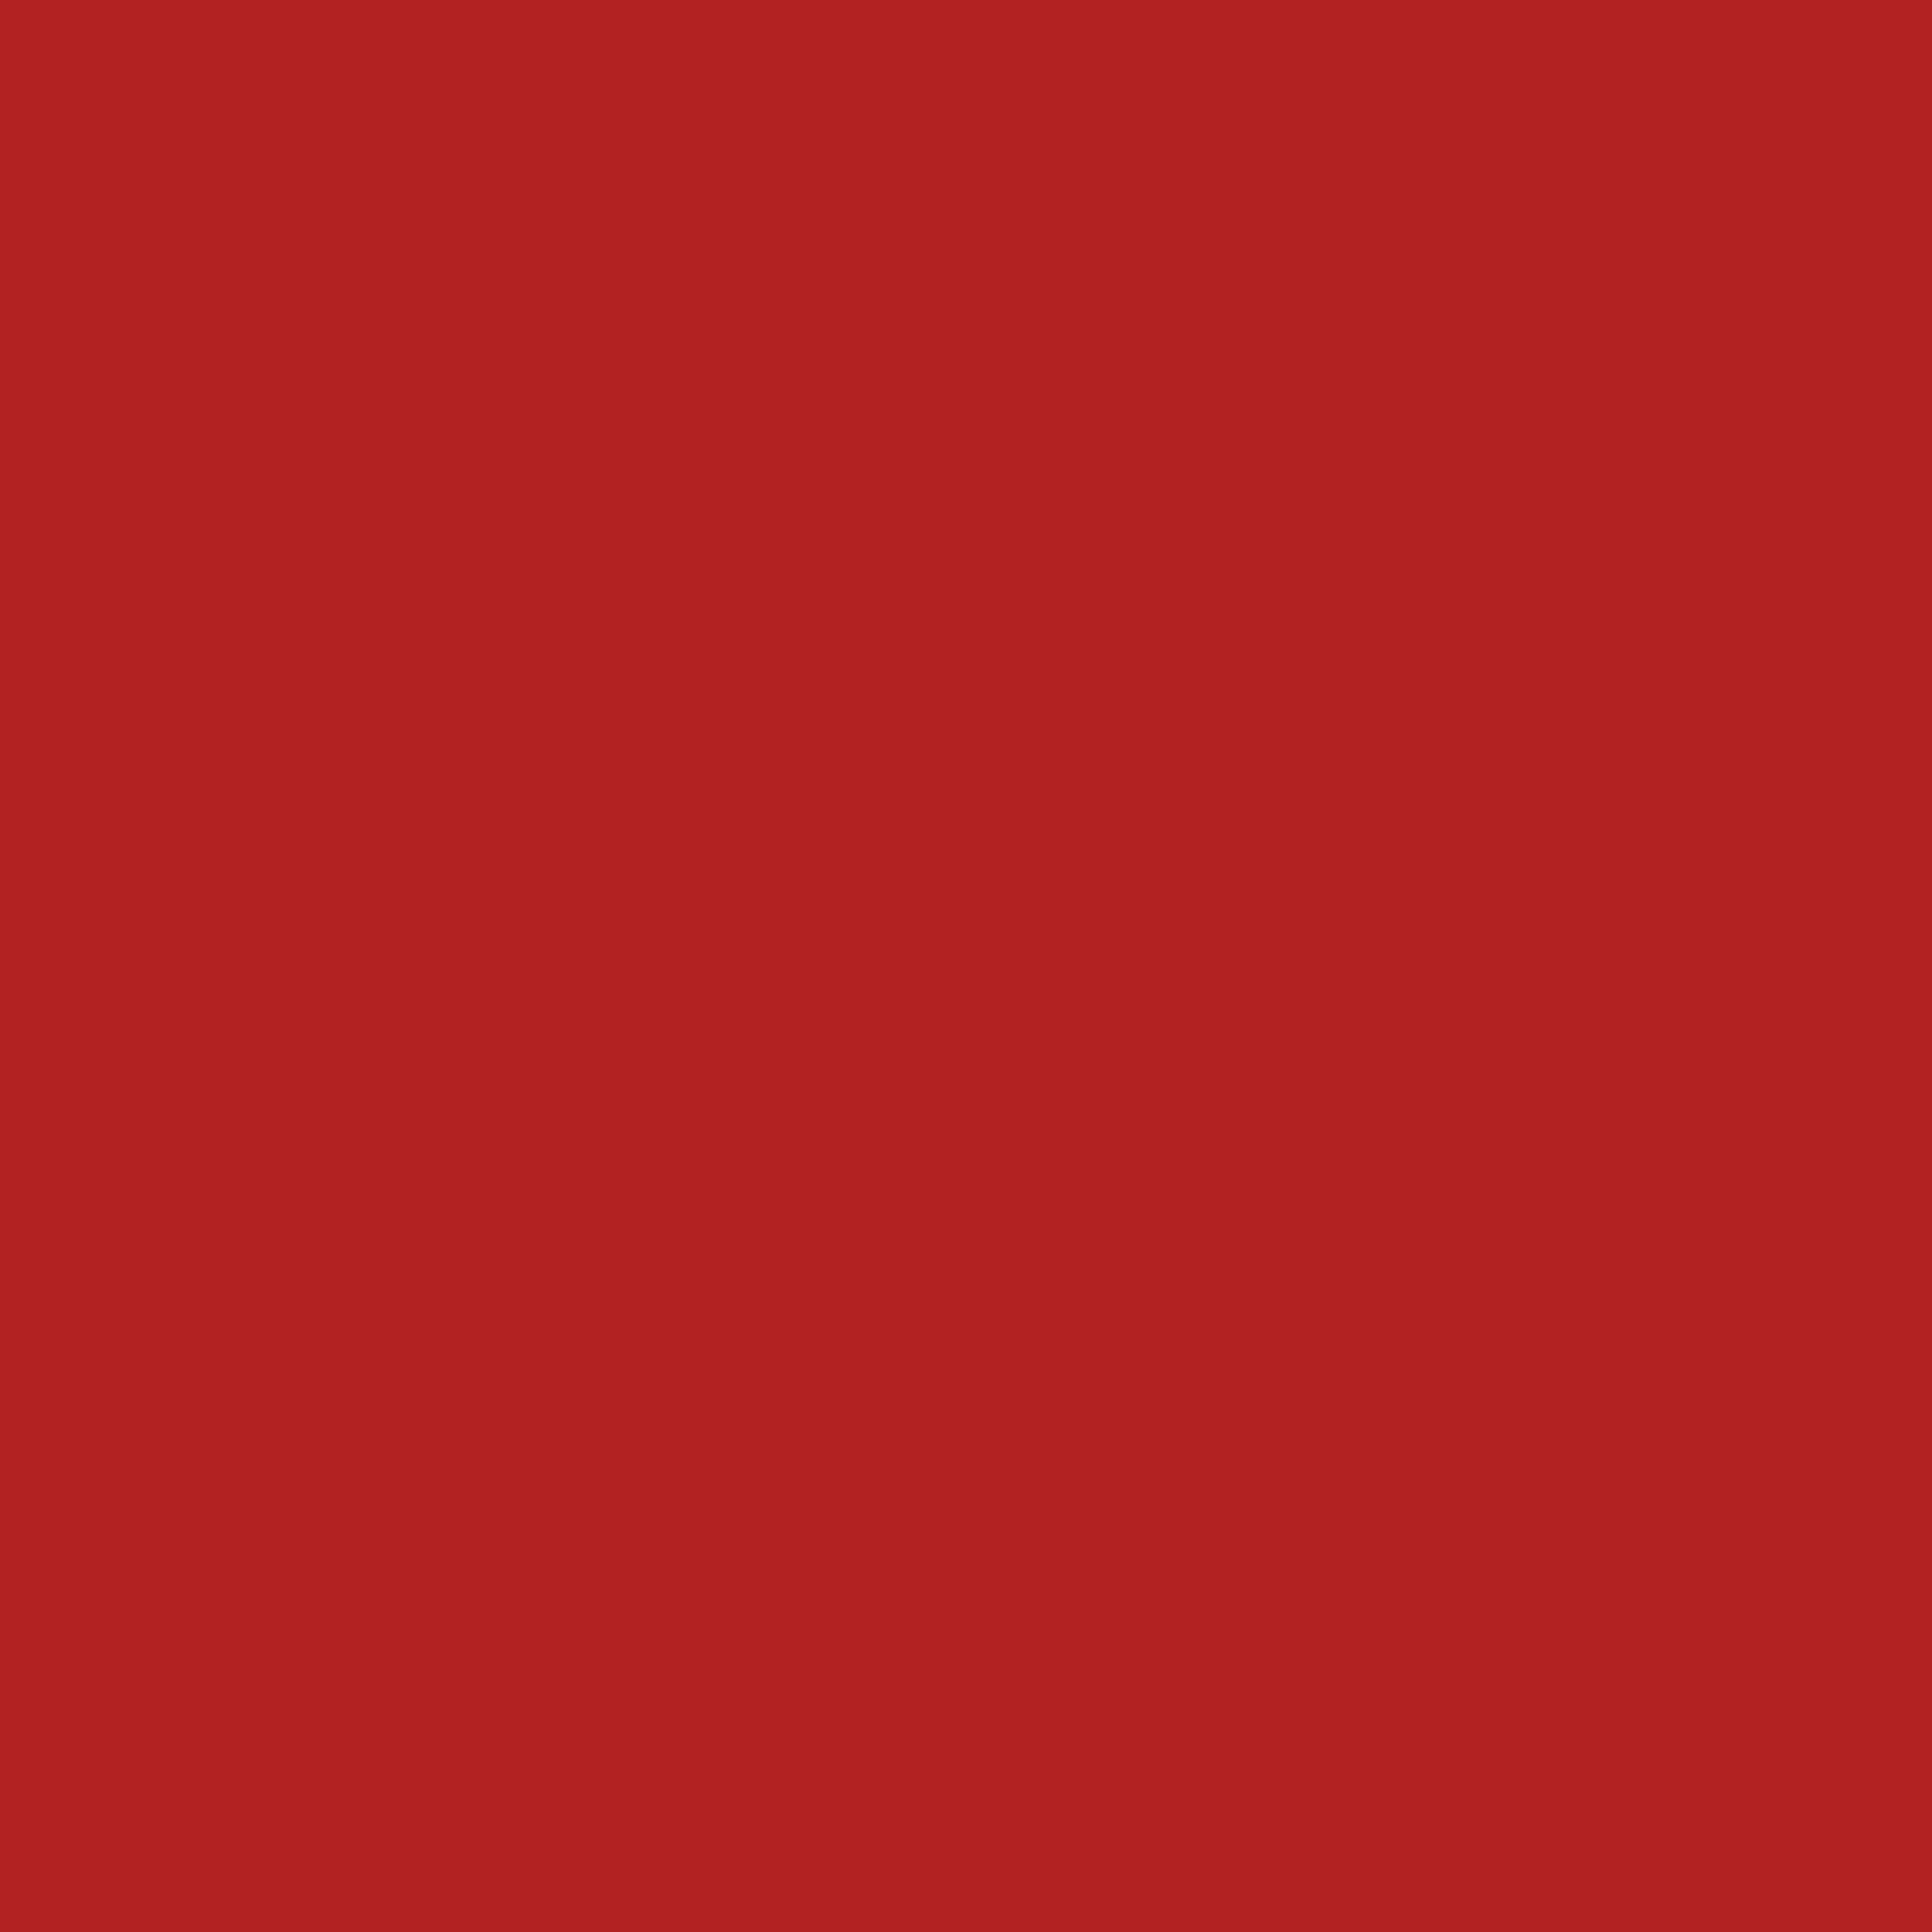 3600x3600 Firebrick Solid Color Background